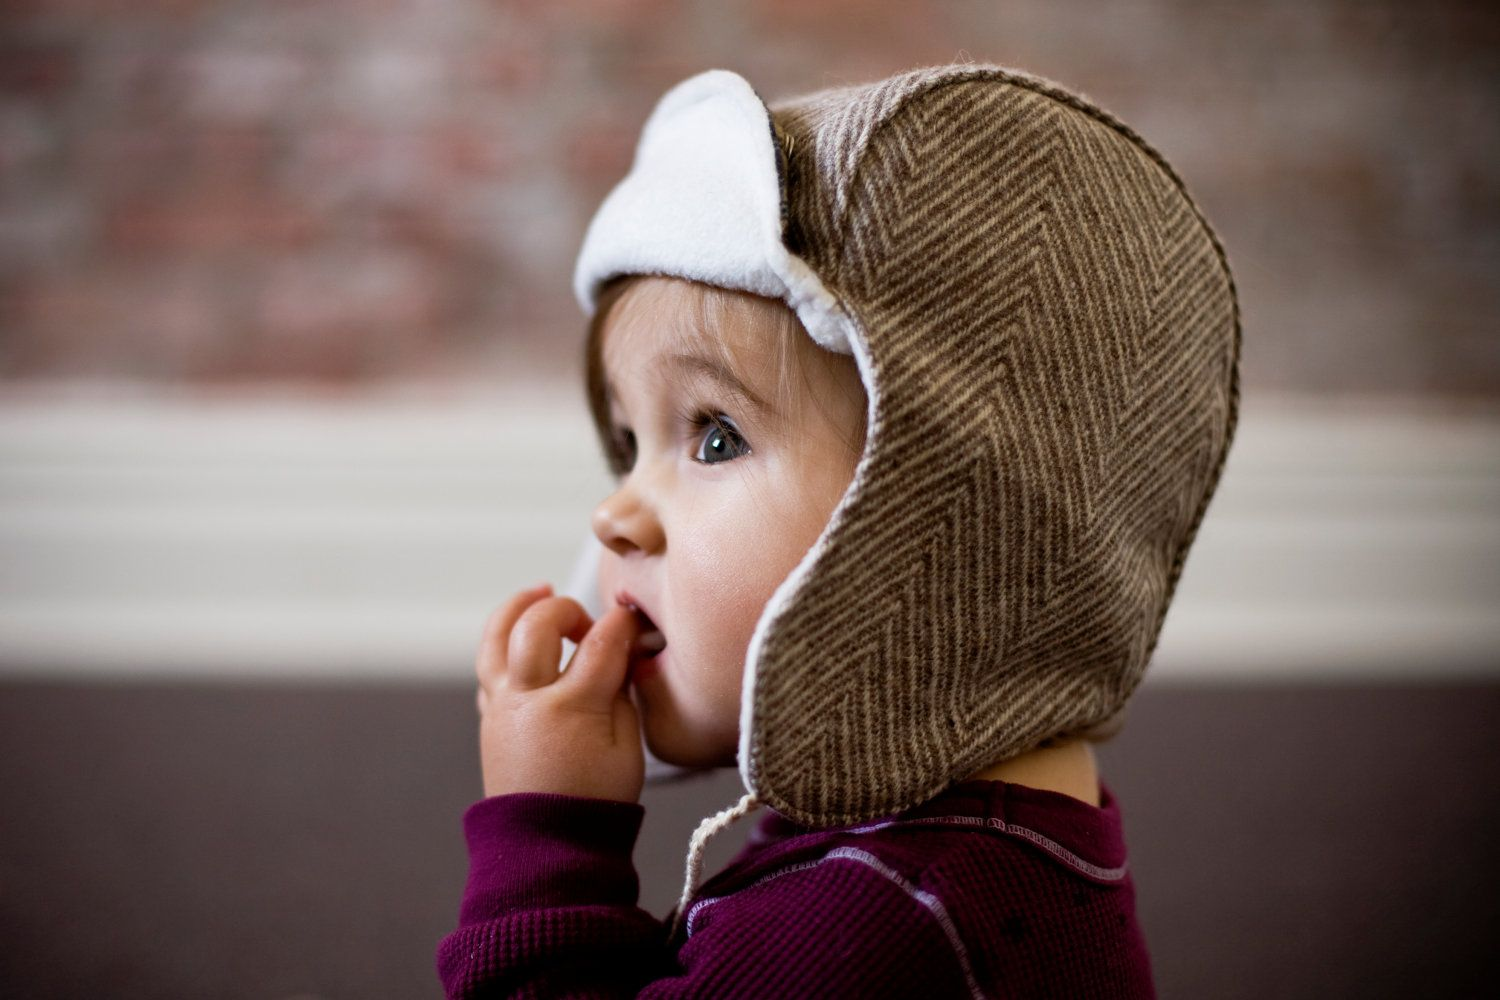 Wee Wool Bomber Hat for Kids - Ready to Ship  a69713acaad